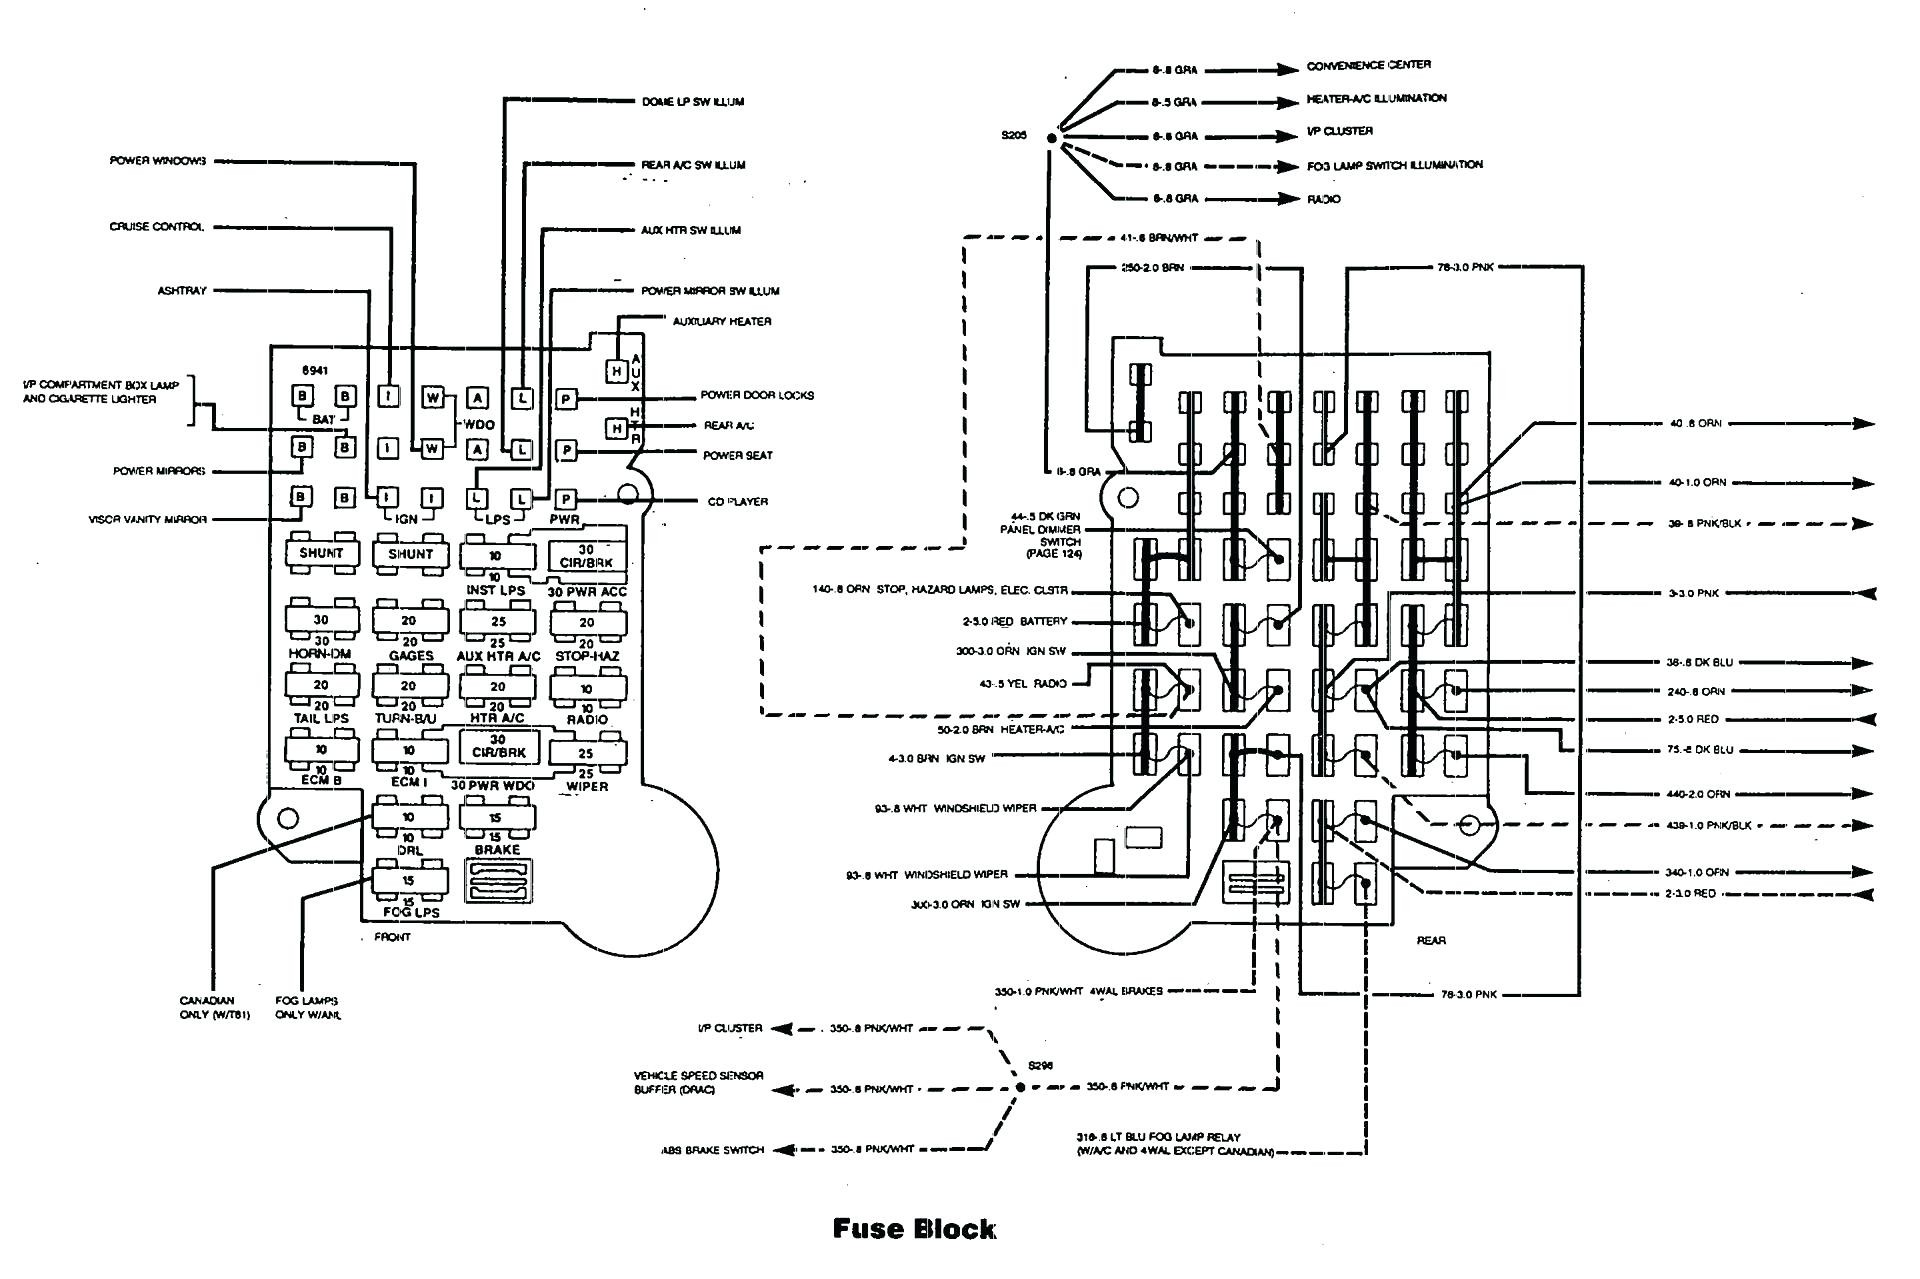 2006 pontiac grand prix engine diagram my wiring diagram 2003 pontiac grand am stereo wiring diagram 2003 pontiac grand am stereo wiring diagram 2003 pontiac grand am stereo wiring diagram 2003 pontiac grand am stereo wiring diagram